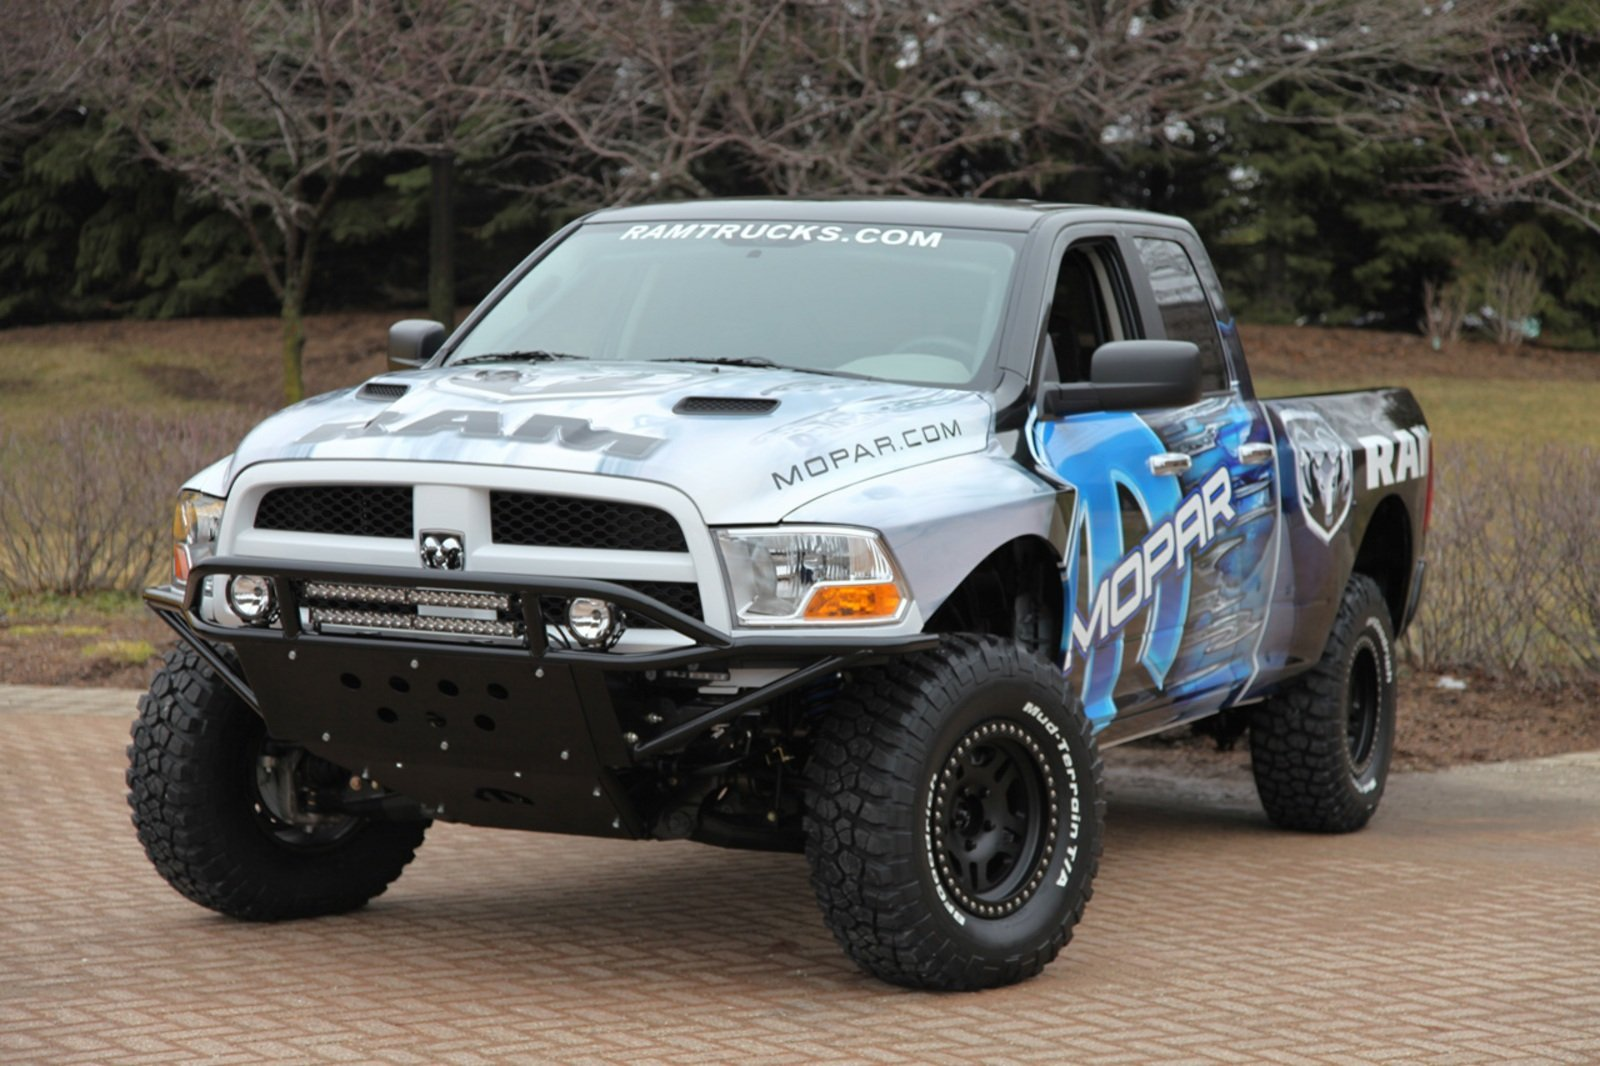 Chevy Reaper For Sale >> 2012 Dodge Mopar Ram Runner Stage II Review - Gallery ...